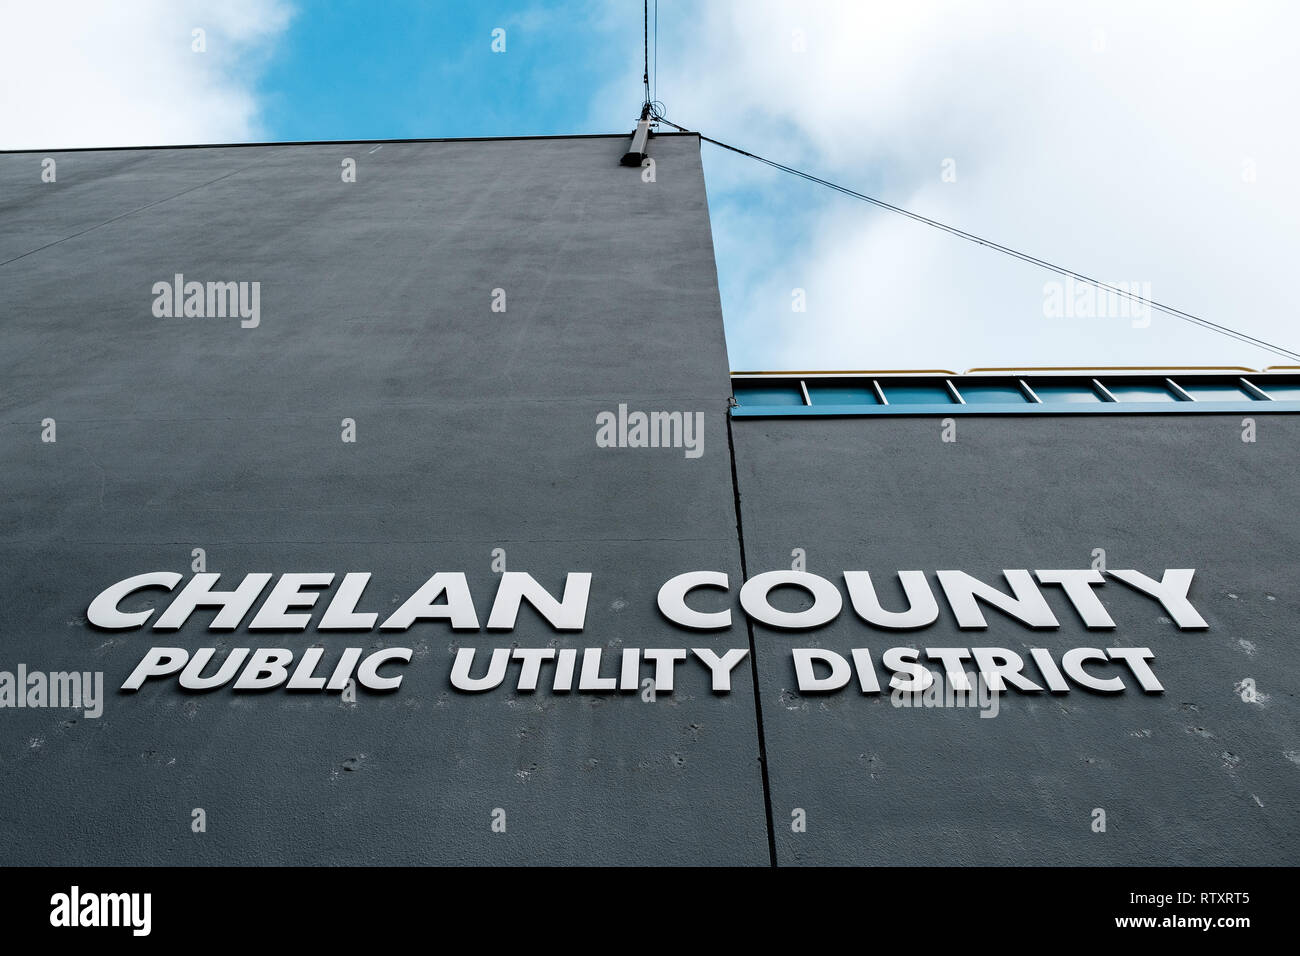 The Chelan County Public Utility Department the team managing the hydroelectric dams and electrical grids in the Wenatchee Valley, as well as the parks, potable water and waste water plants.  About 35% of the electricity is used in the local economies, while the remainder is sold throughout much of the rest of the Pacific Northwest. - Stock Image